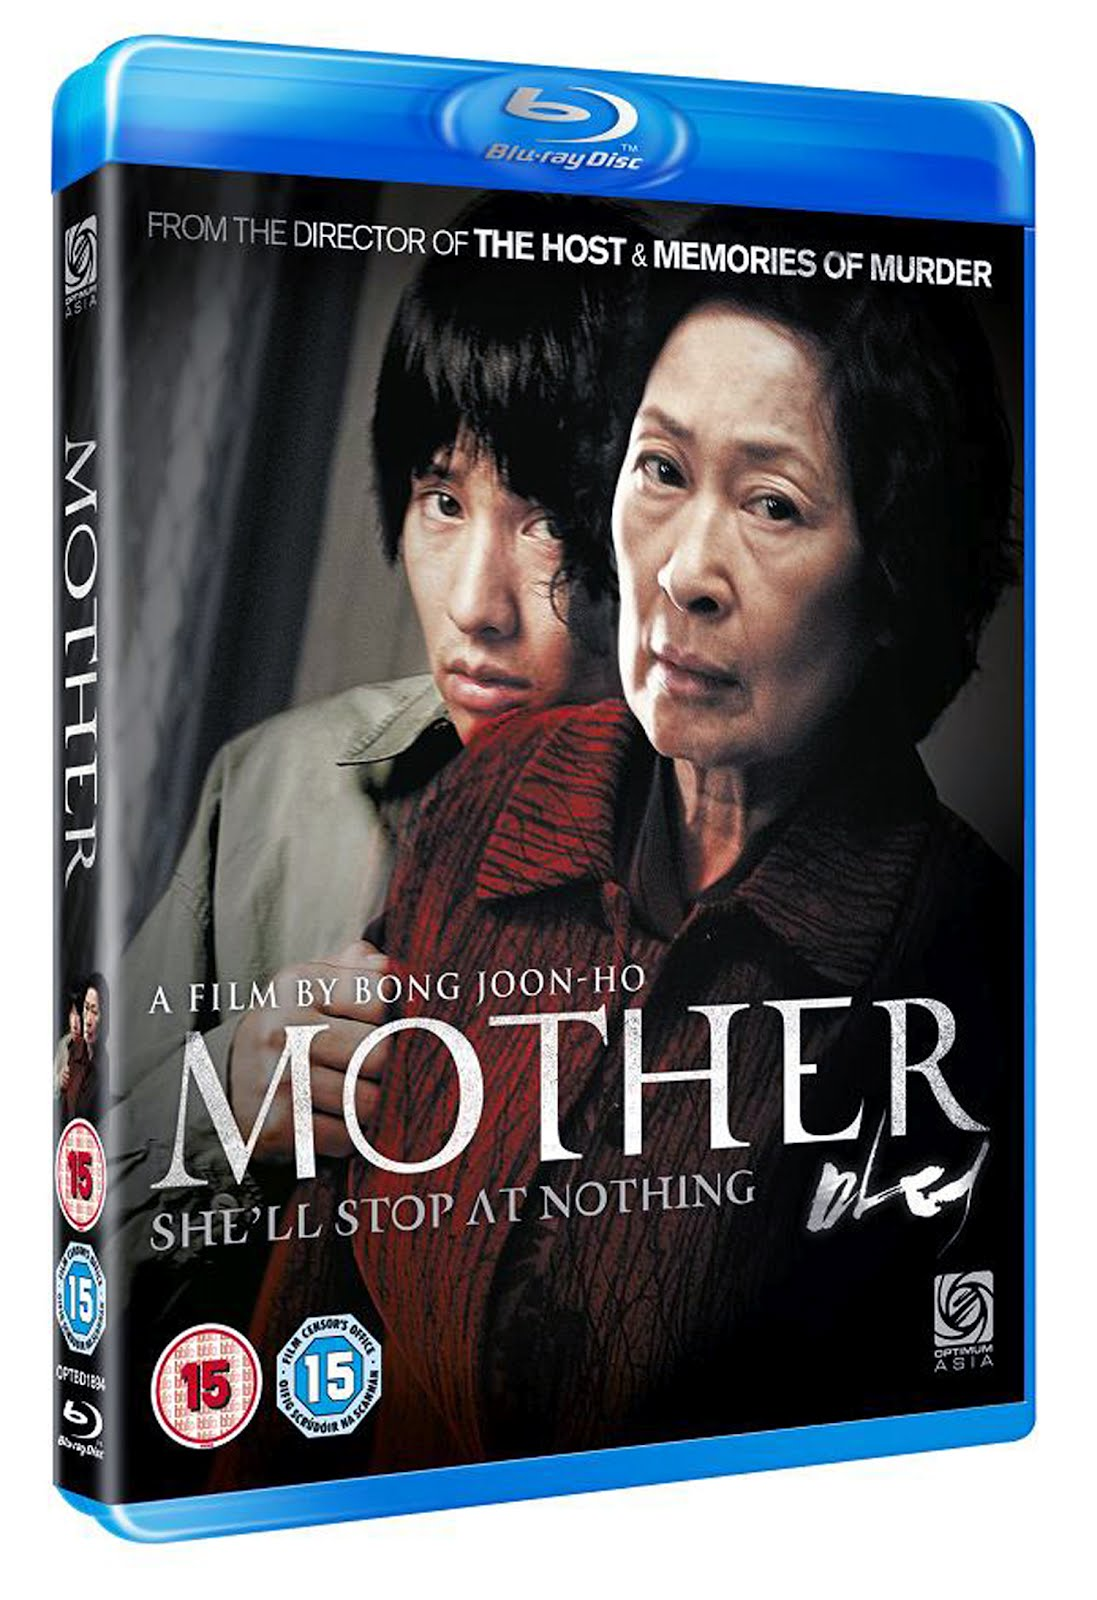 mother-madeo-movie-blu-ray-case-box